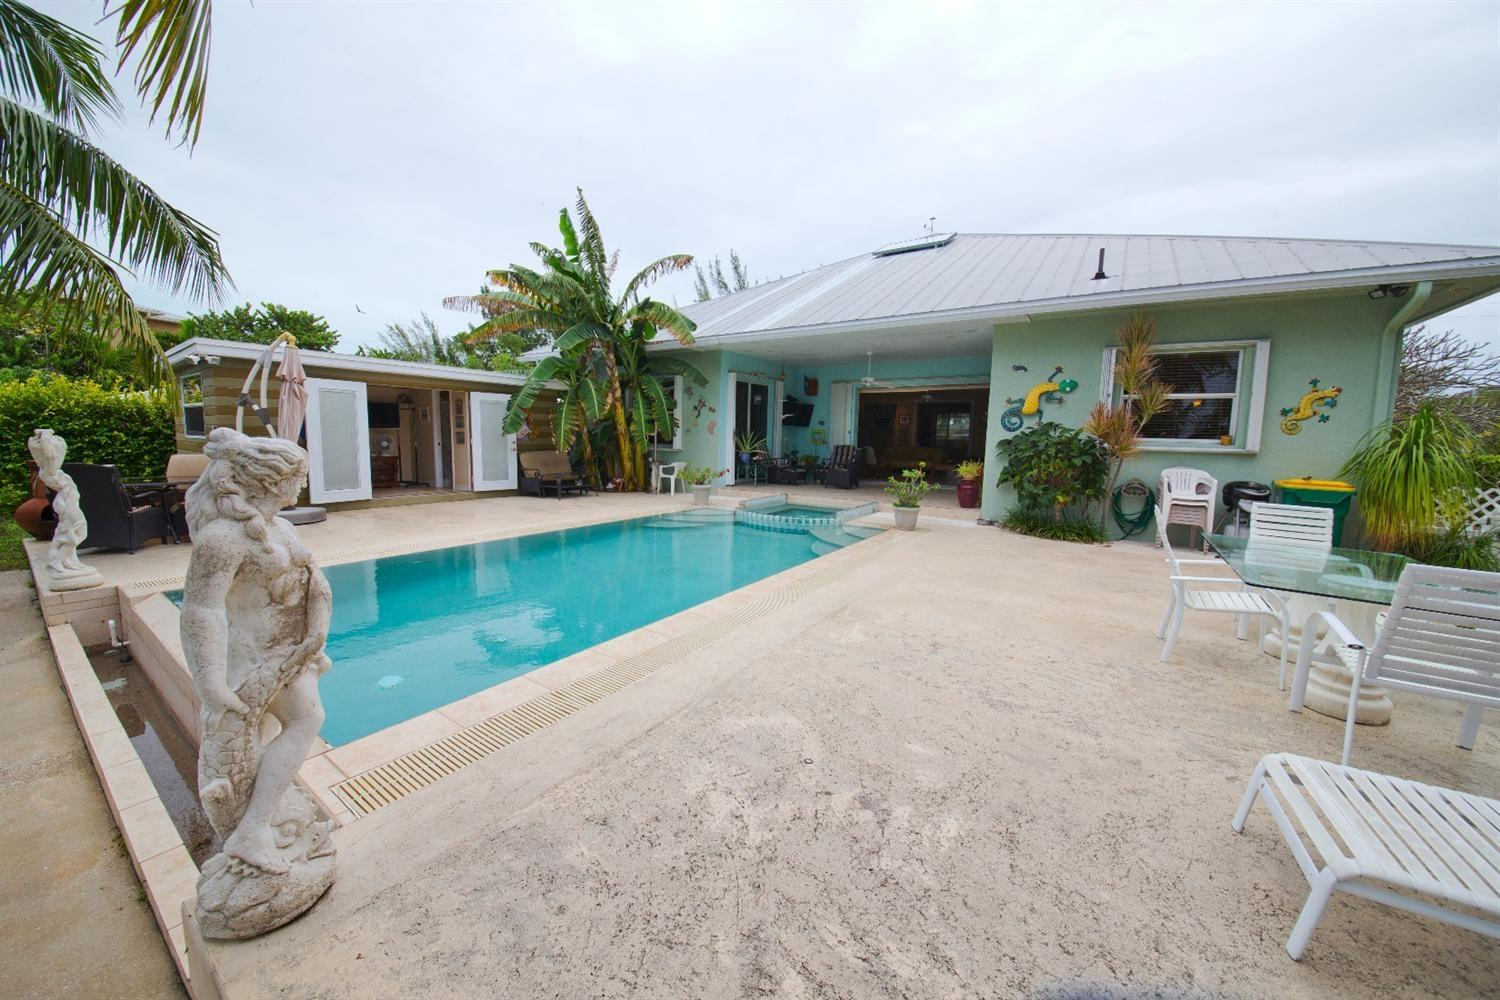 155 key haven rd key west fl 33040 recently sold trulia